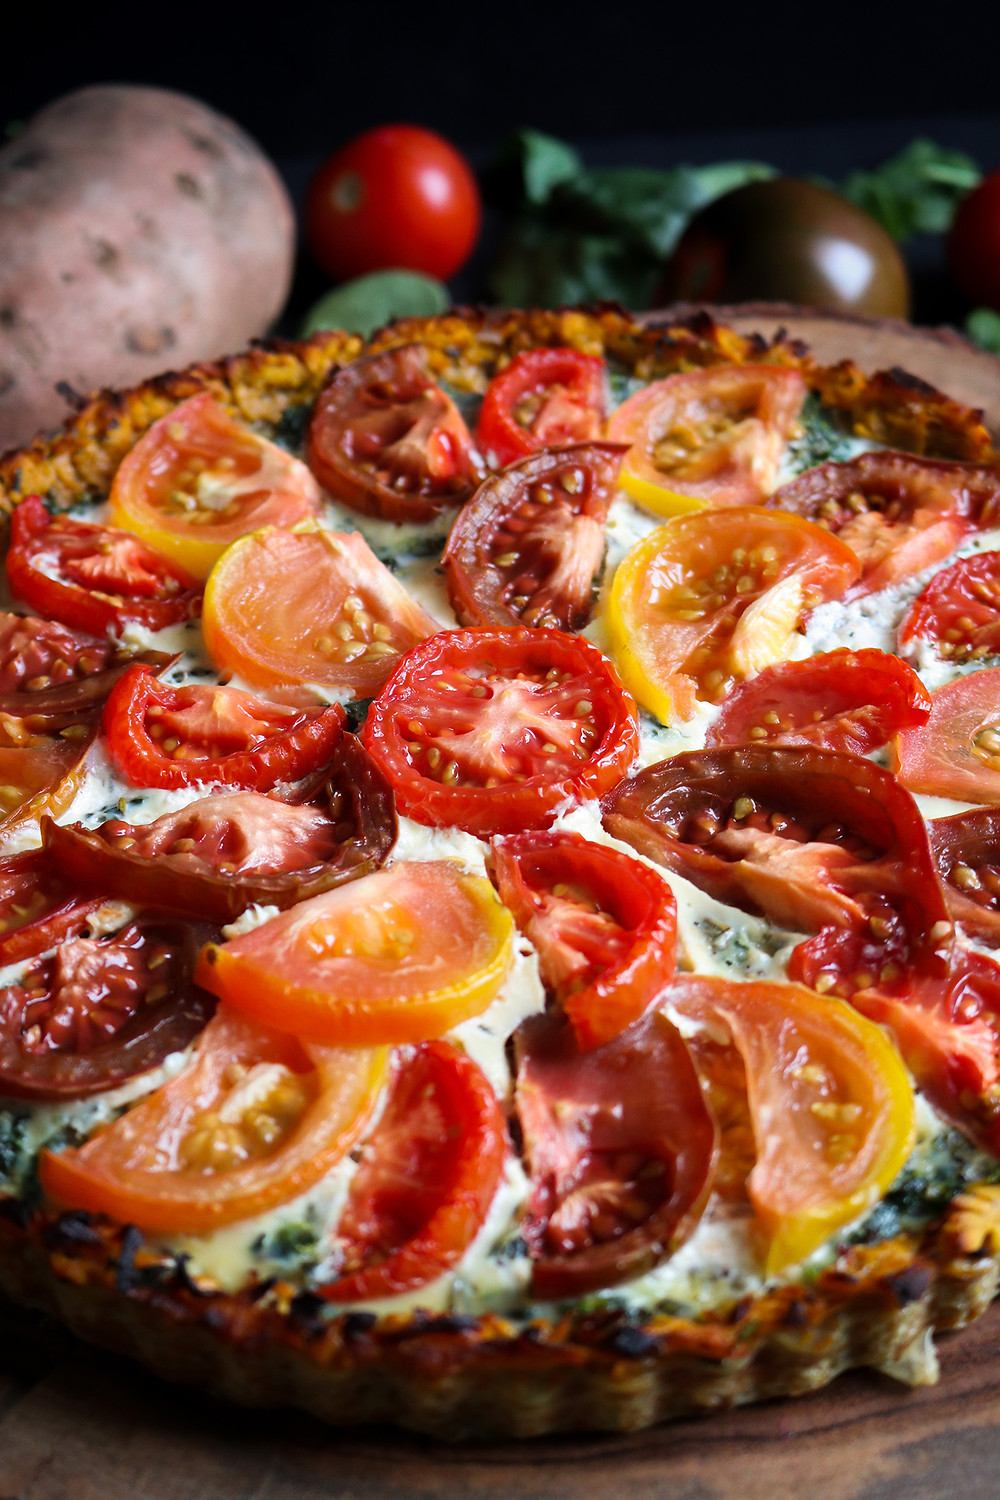 Rosemary and sage tomato tart with sweet potato crust, sautéed spinach and onions, and blue cheese